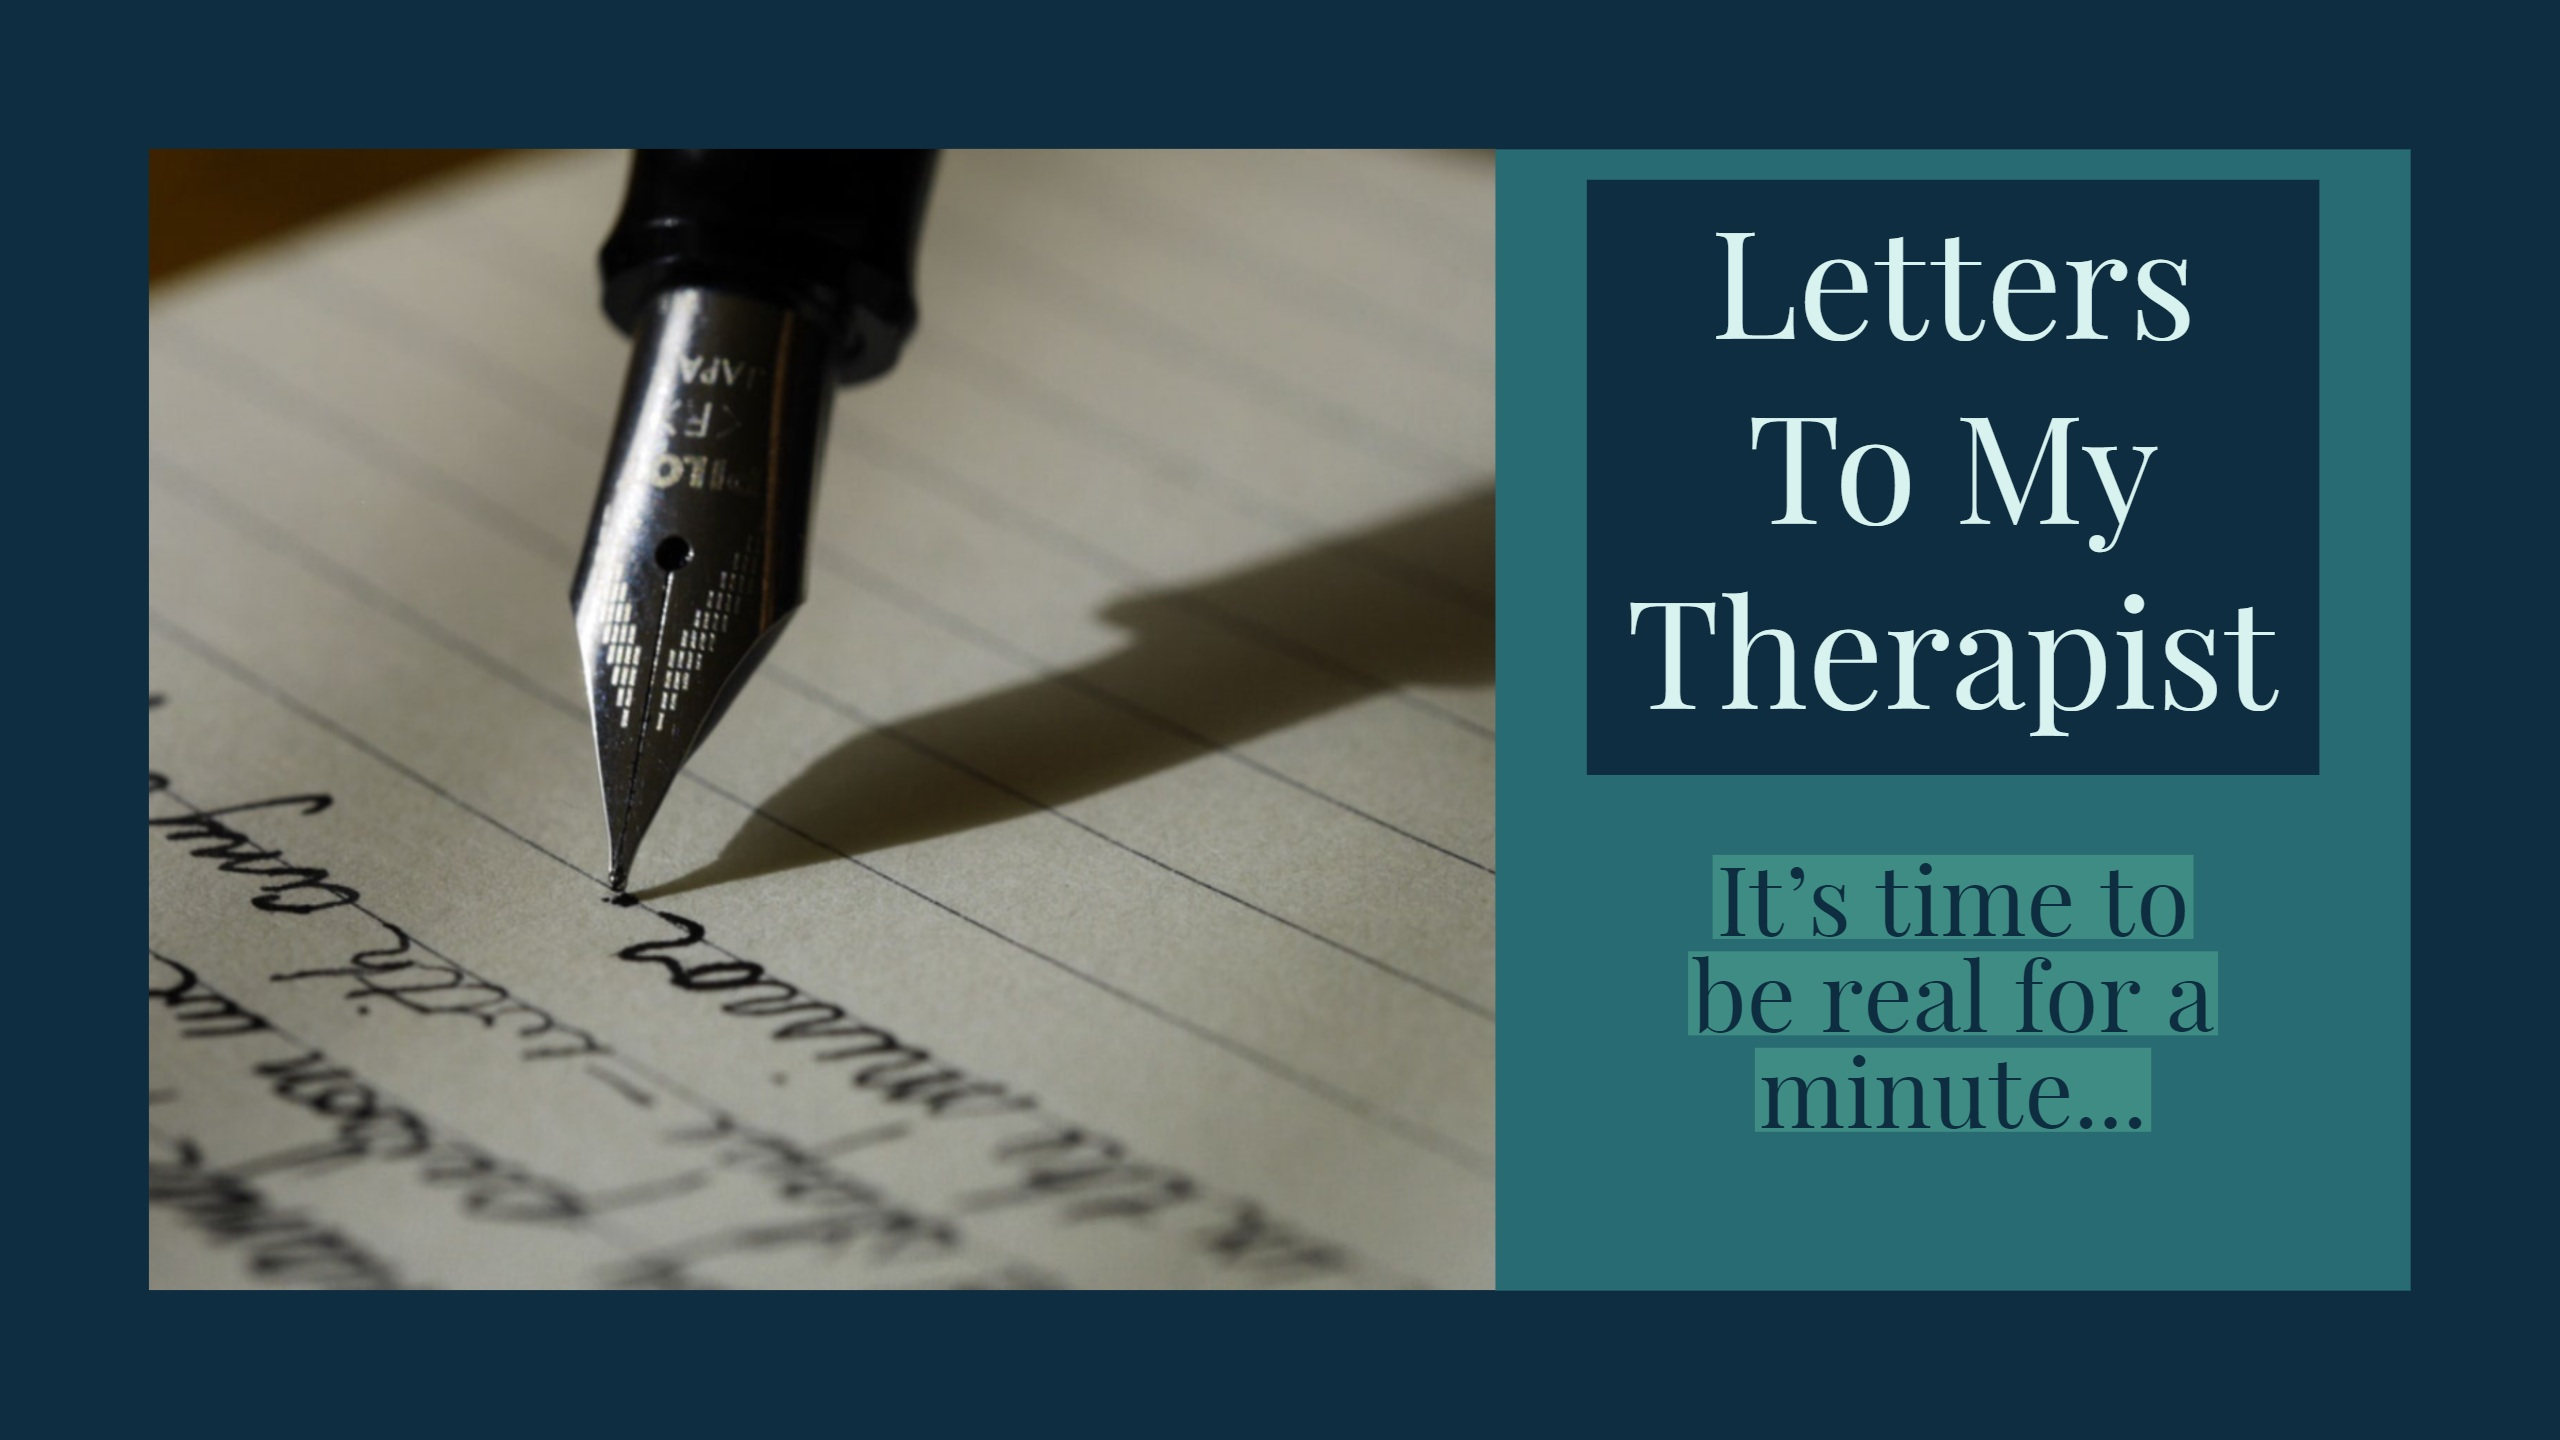 Letters To My Therapist: It's time to be real for a minute...